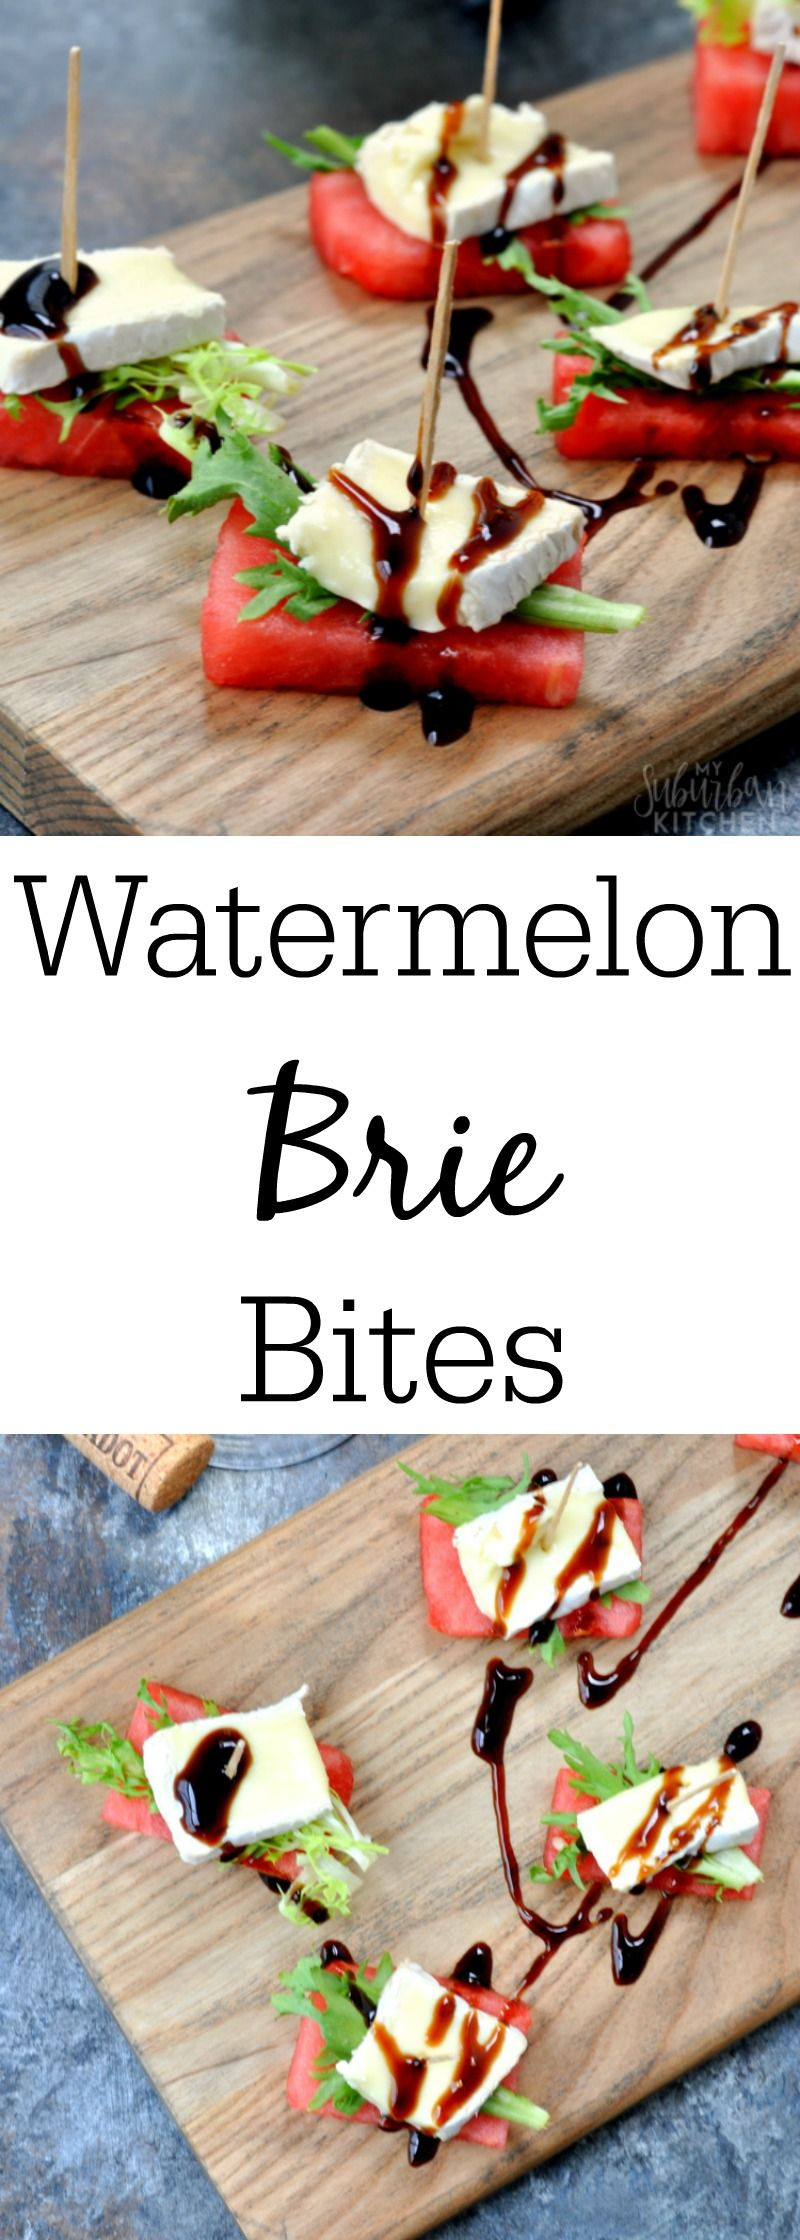 Watermelon Brie Bites for the Perfect Summer Party Appetizer. Use Joan of Arc® Brie for Flavorful Results!